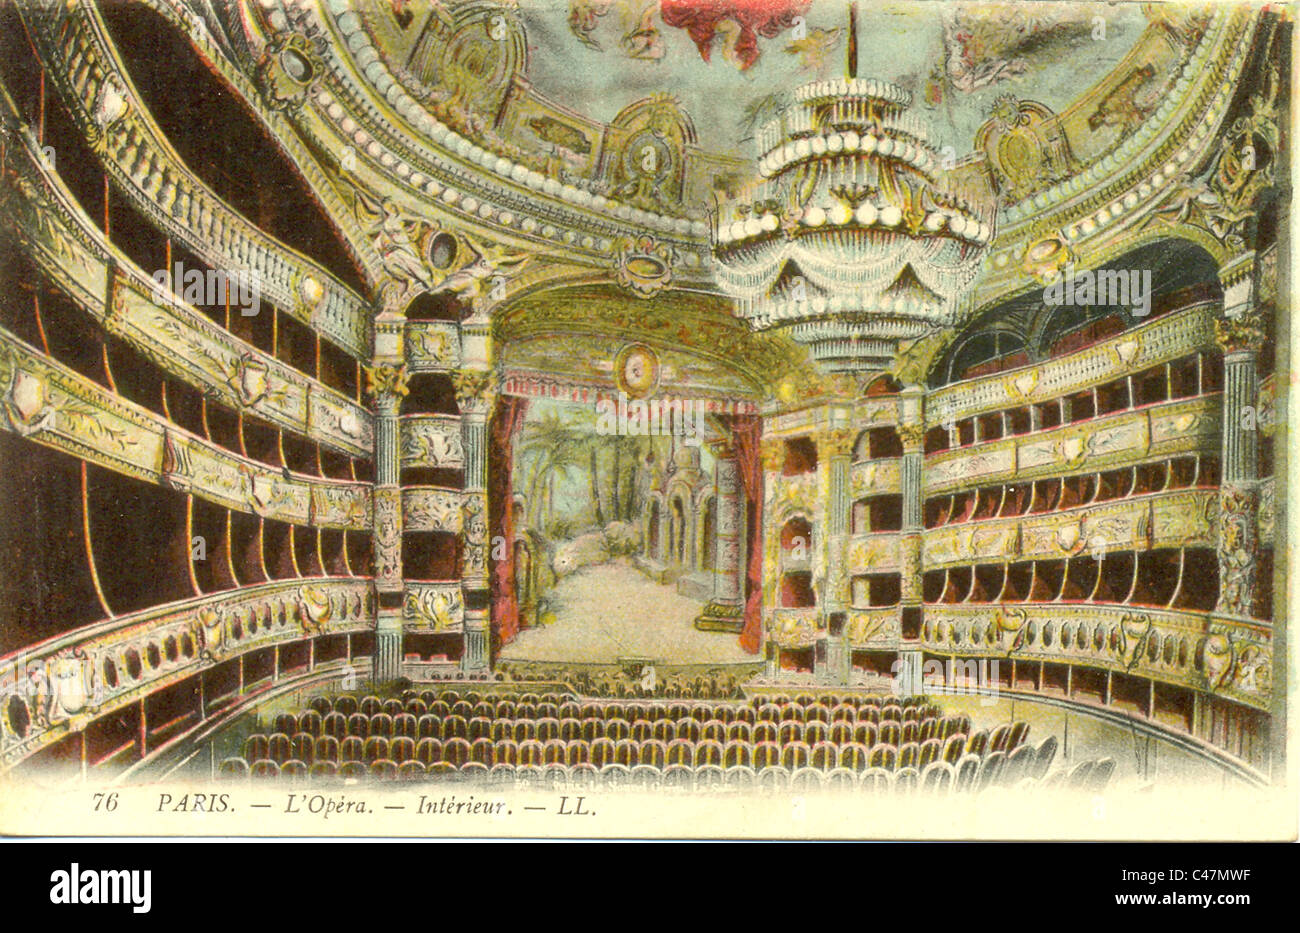 Postcard of interior of the Opera House, Paris - Stock Image